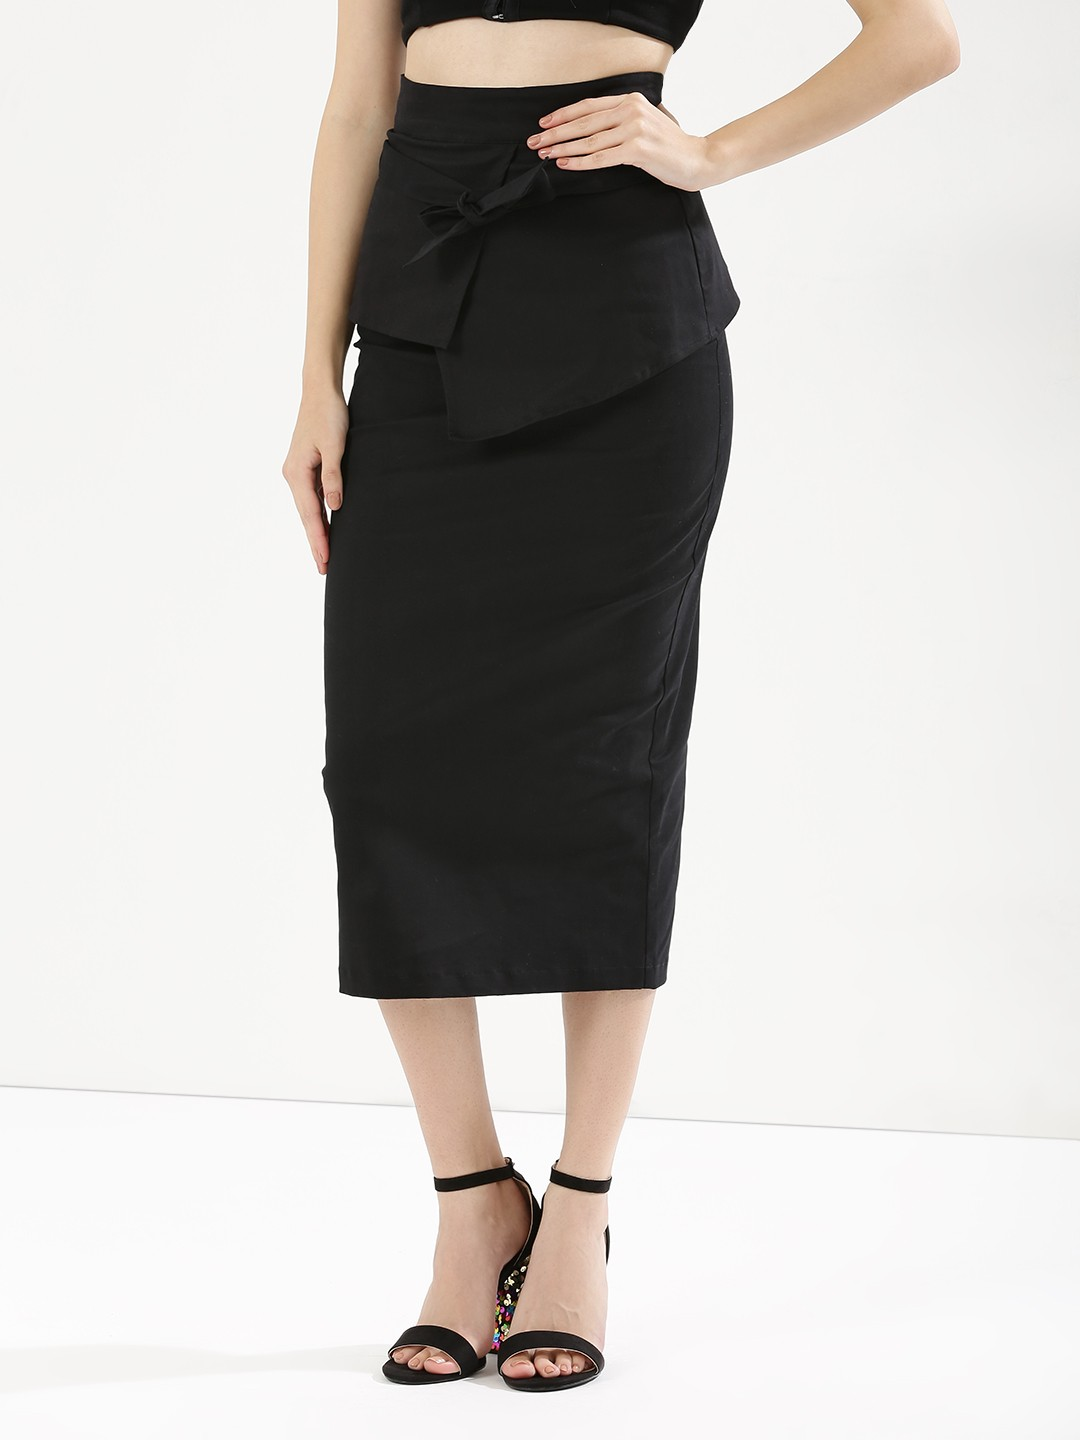 3 belly fat - High Waist Wrap Peplum Skirt